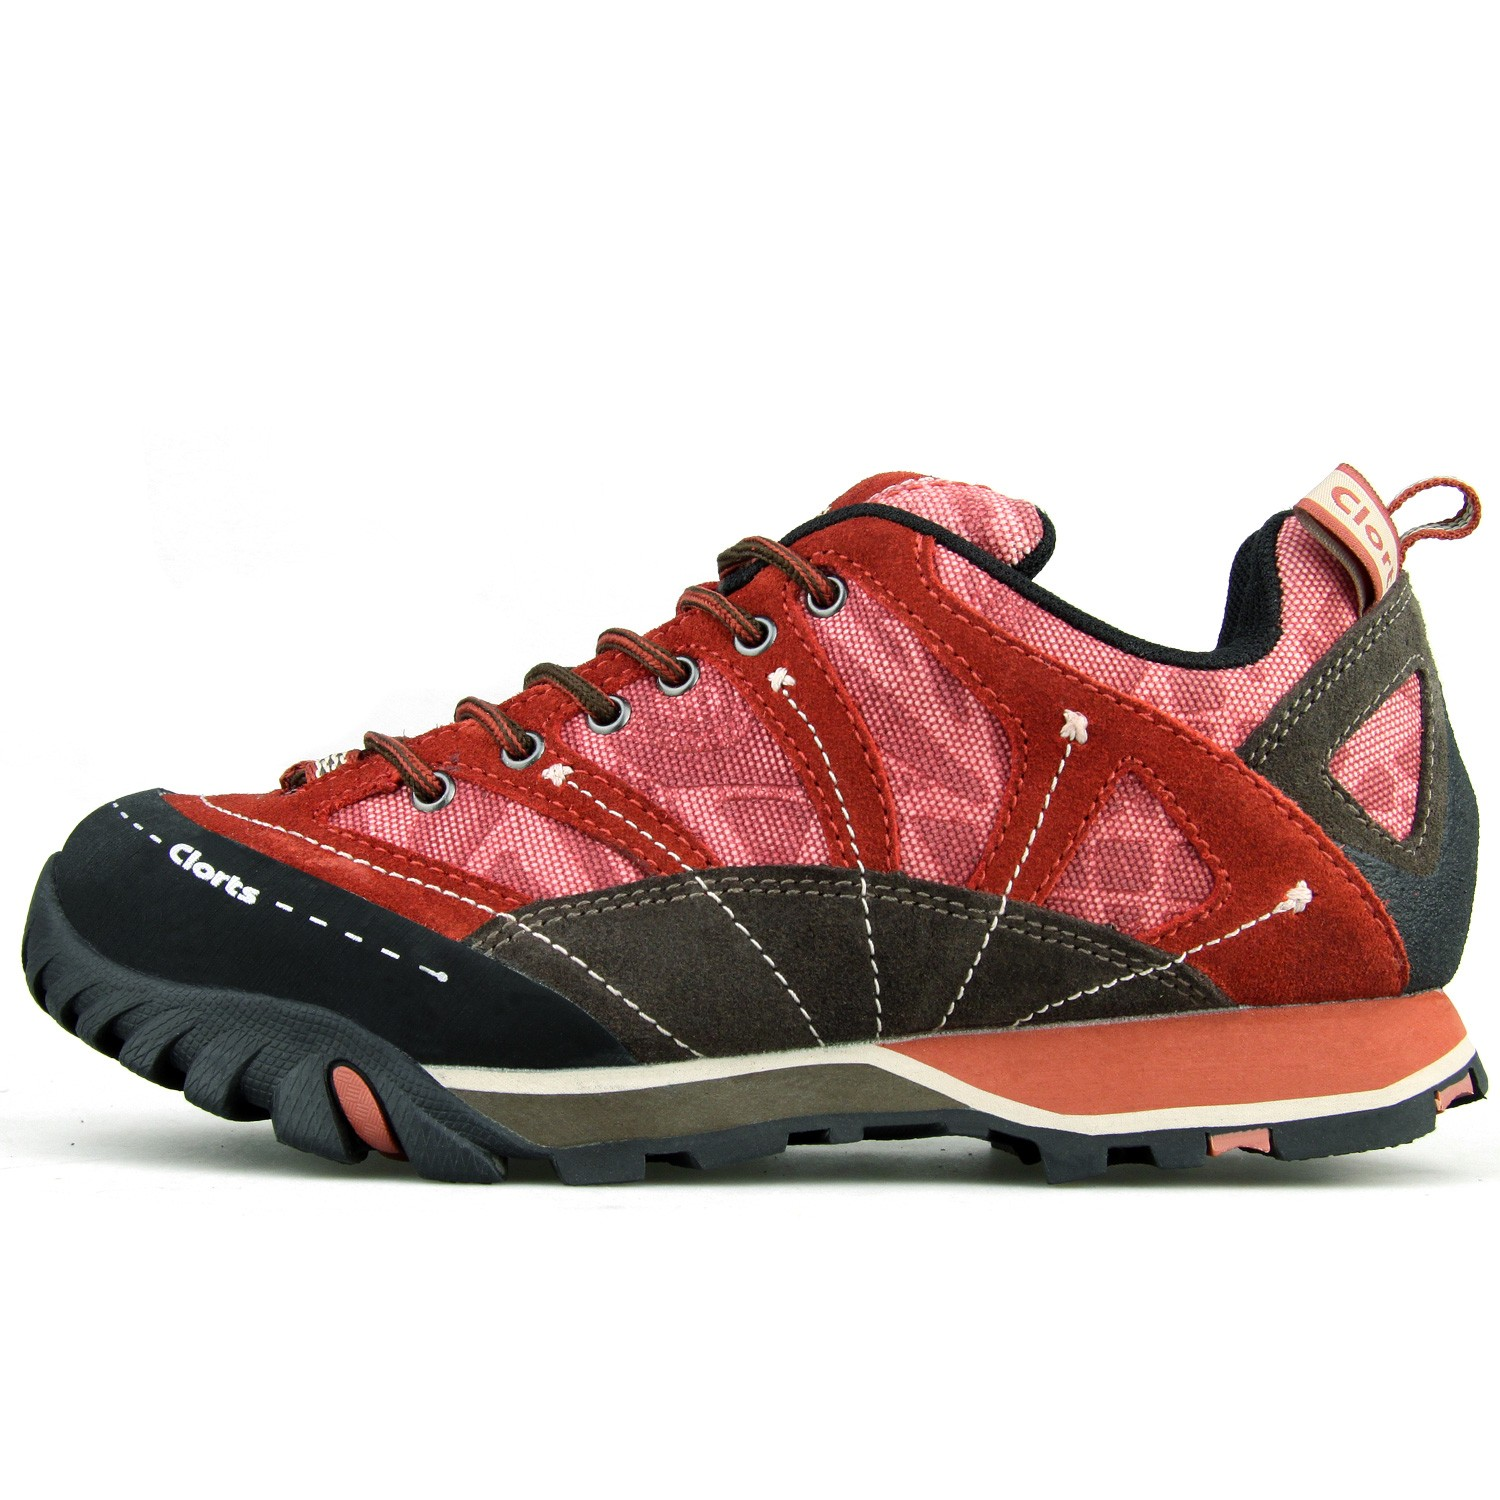 Mens Trail Trekking Shoes